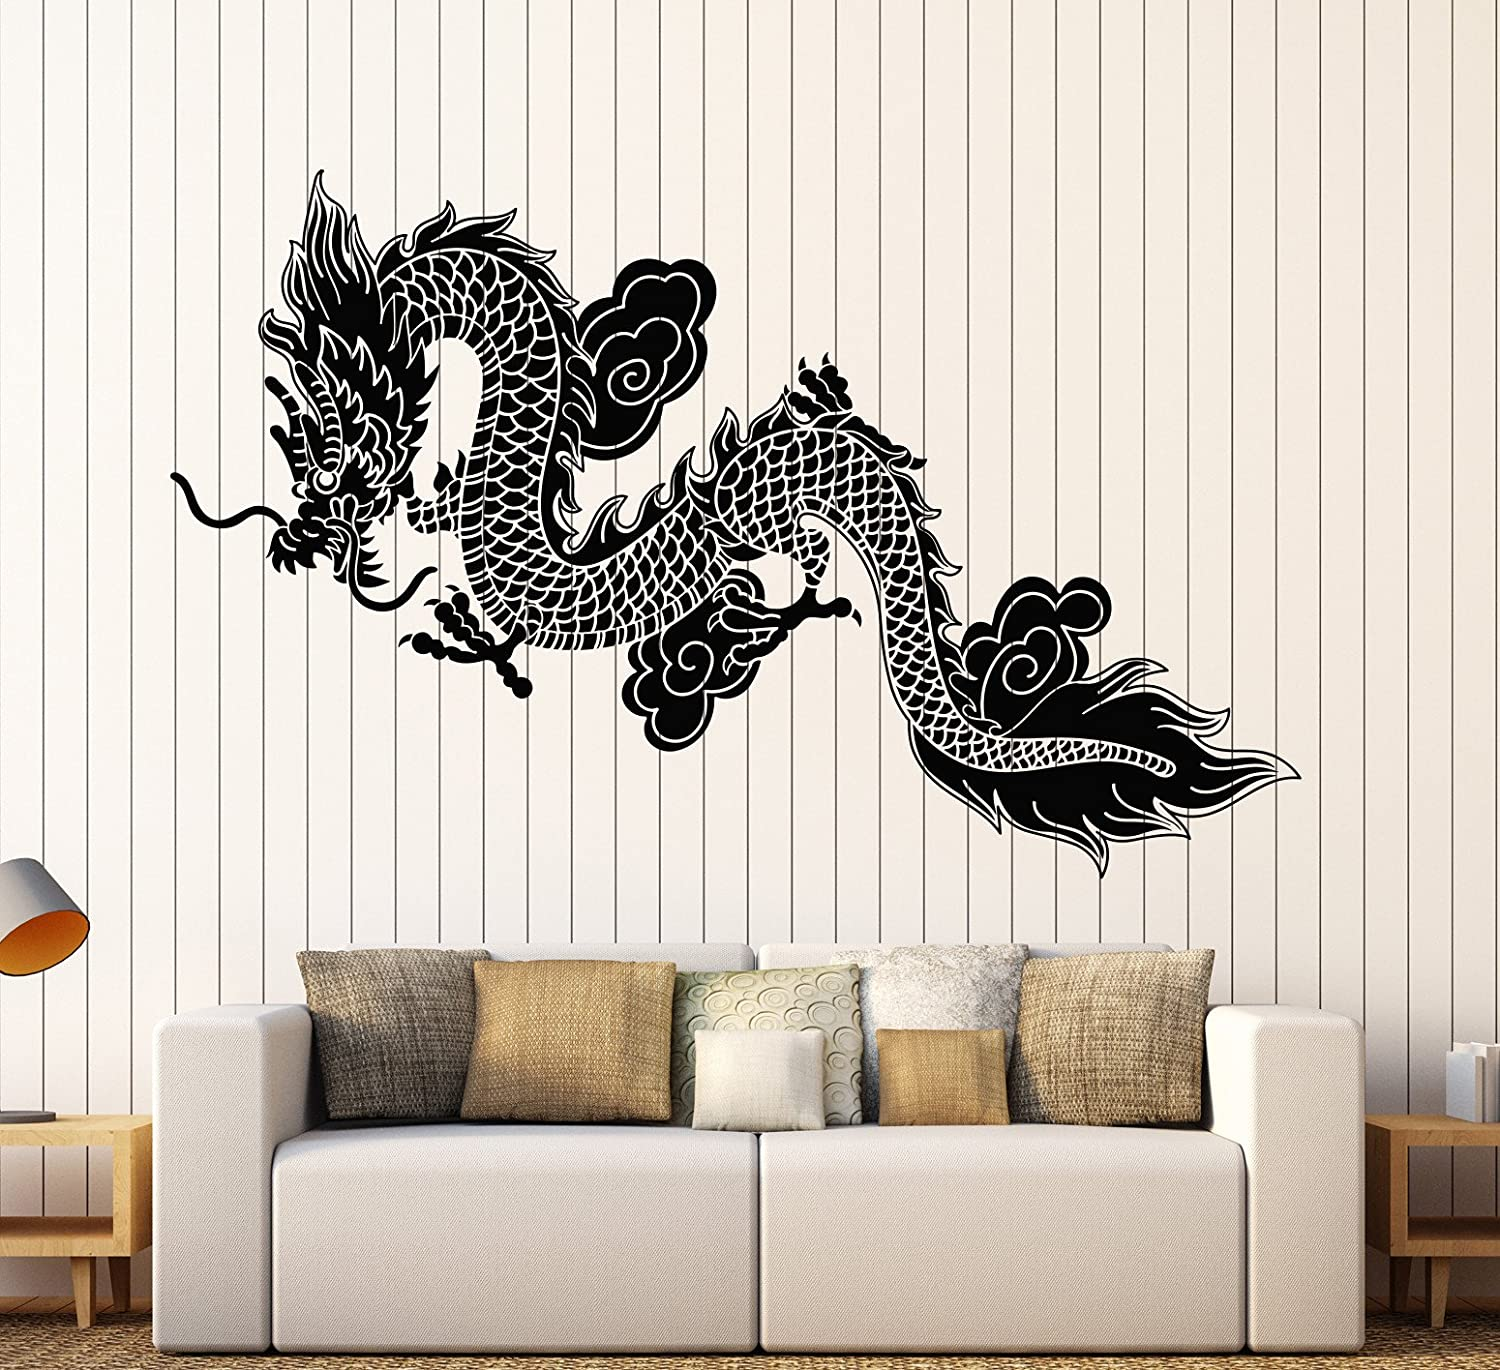 vs4257 Vinyl Wall Decal Chinese Dragon Asian Decor Oriental Style Stickers